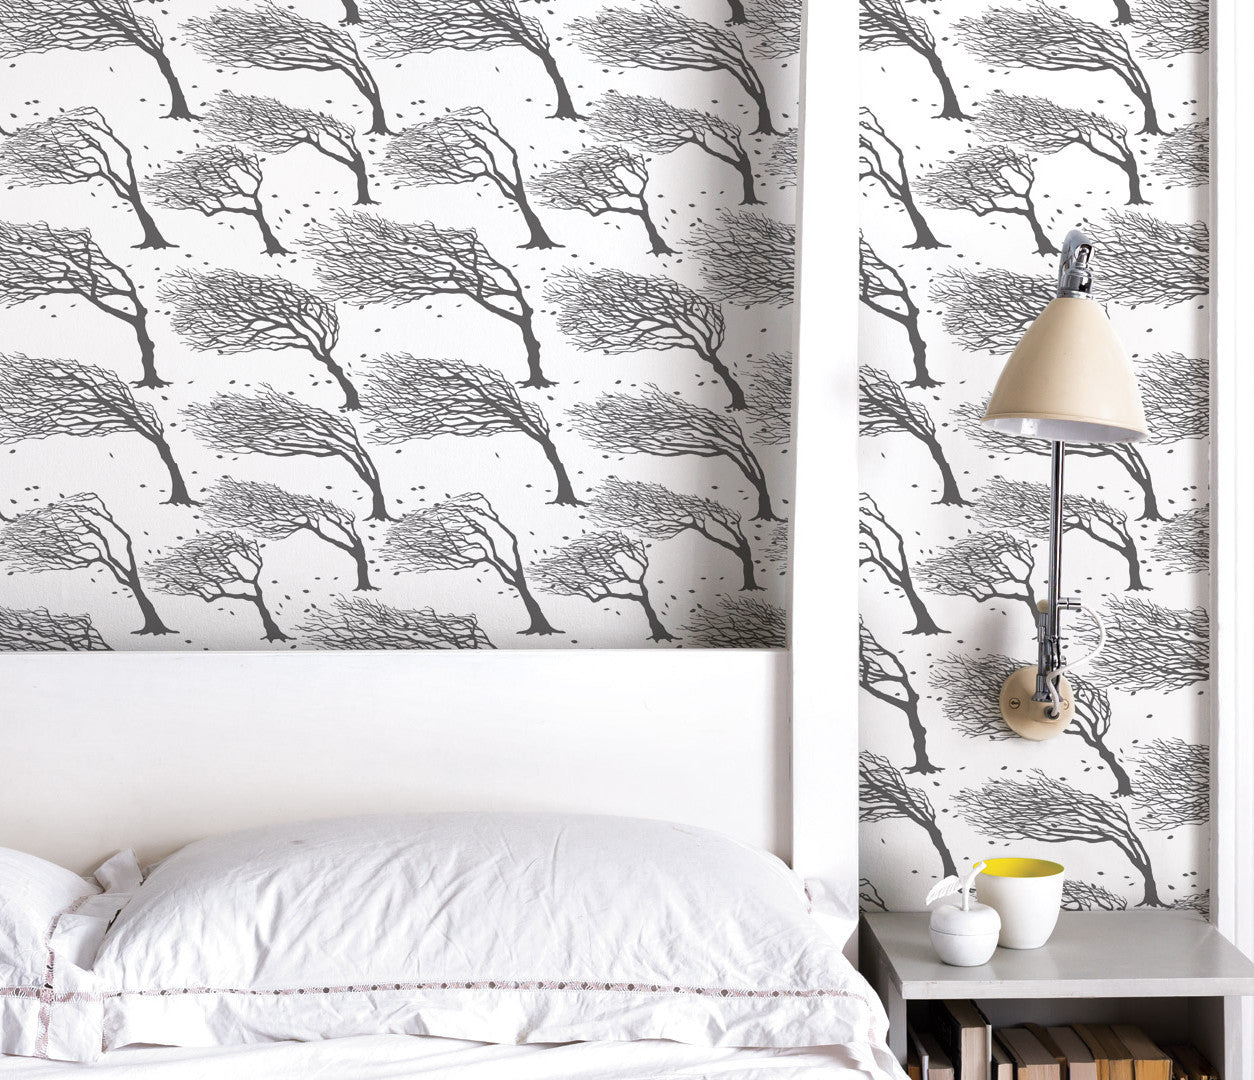 Wall Art Ideas: Economical Screen Prints, Printed Northeasterly Wallpaper in Dark Grey